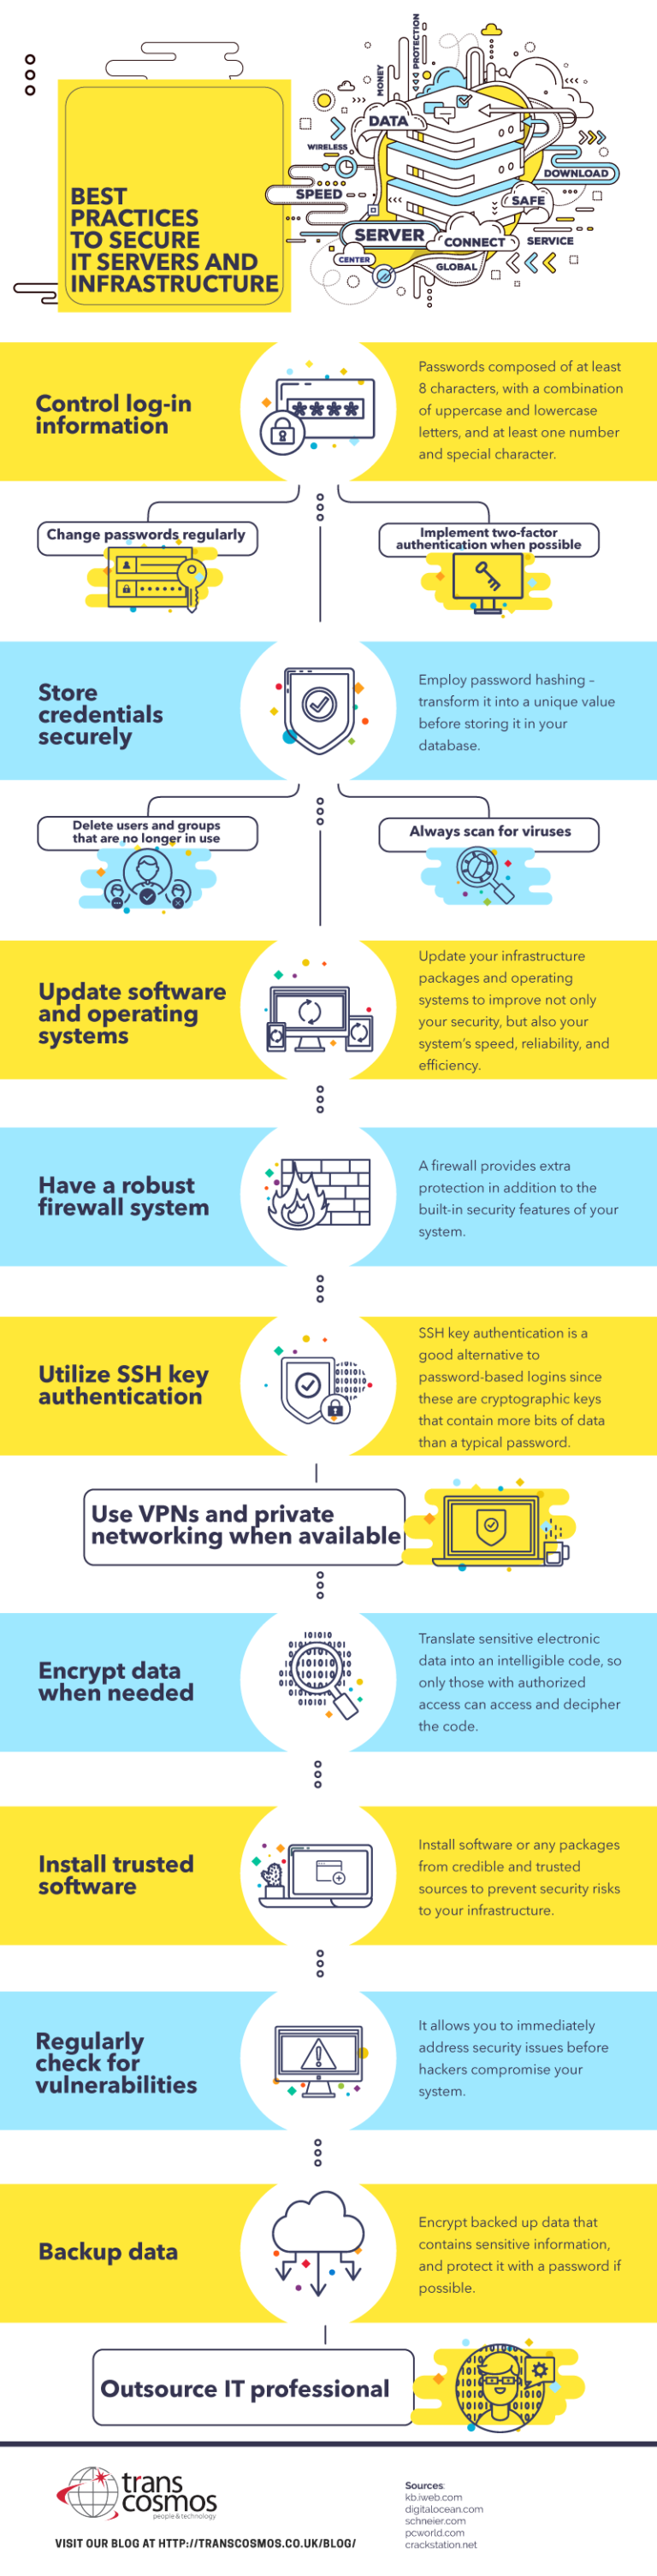 Best Practices to Secure IT Servers and Infrastructure infographic 768x3012 - Best Practices to Secure IT Servers and Infrastructure